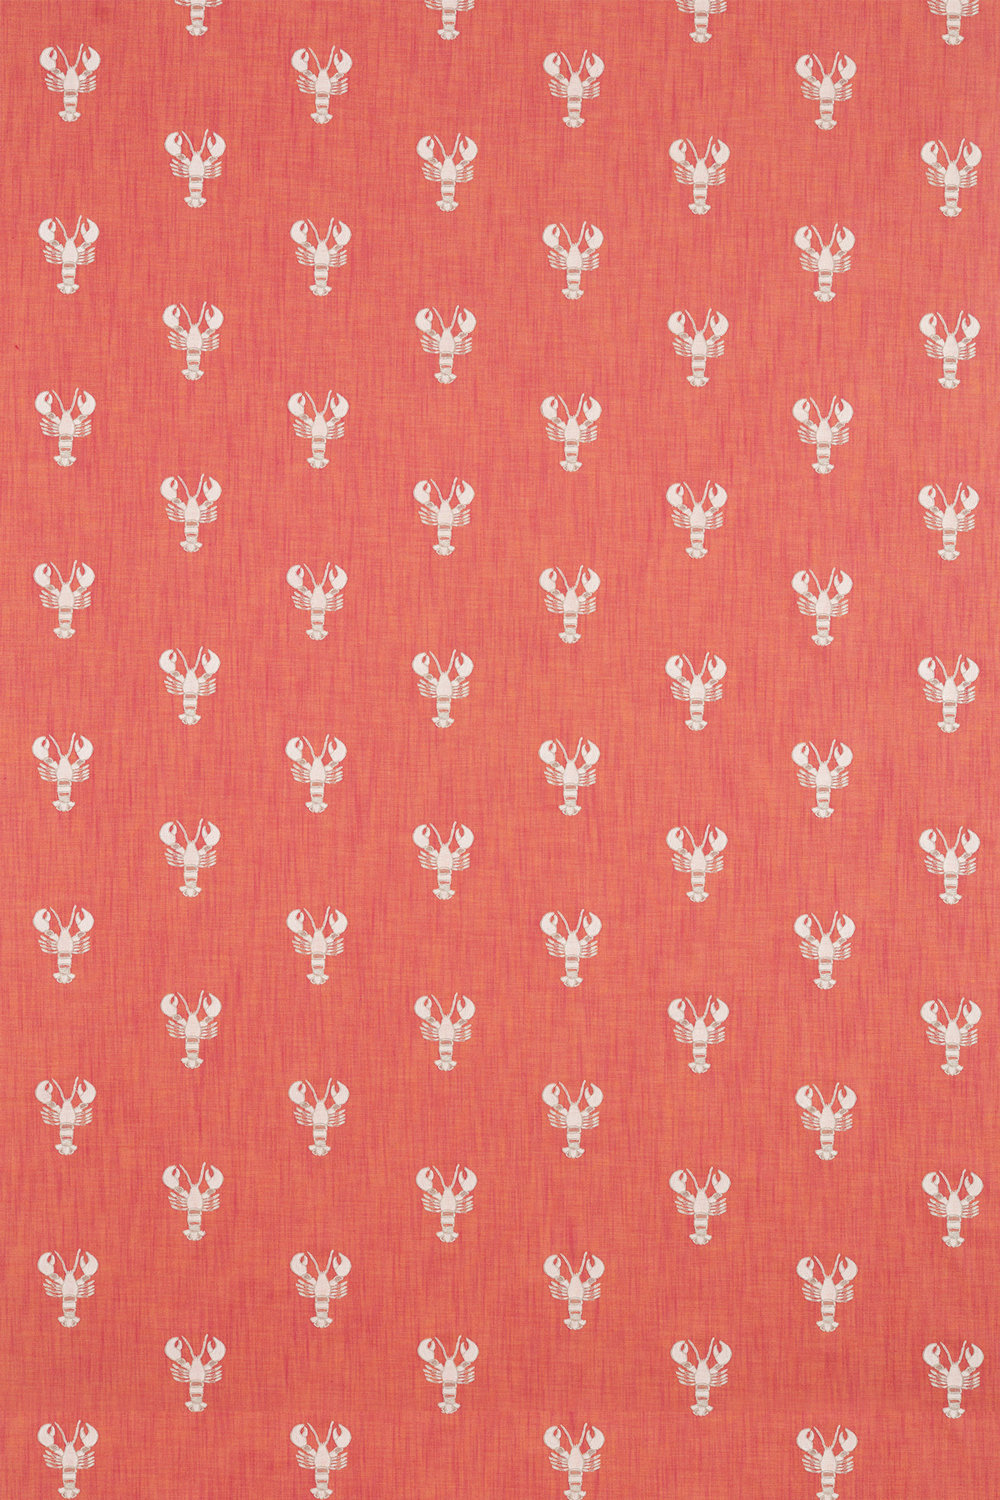 Cromer Embroidery Fabric - Coral - by Sanderson